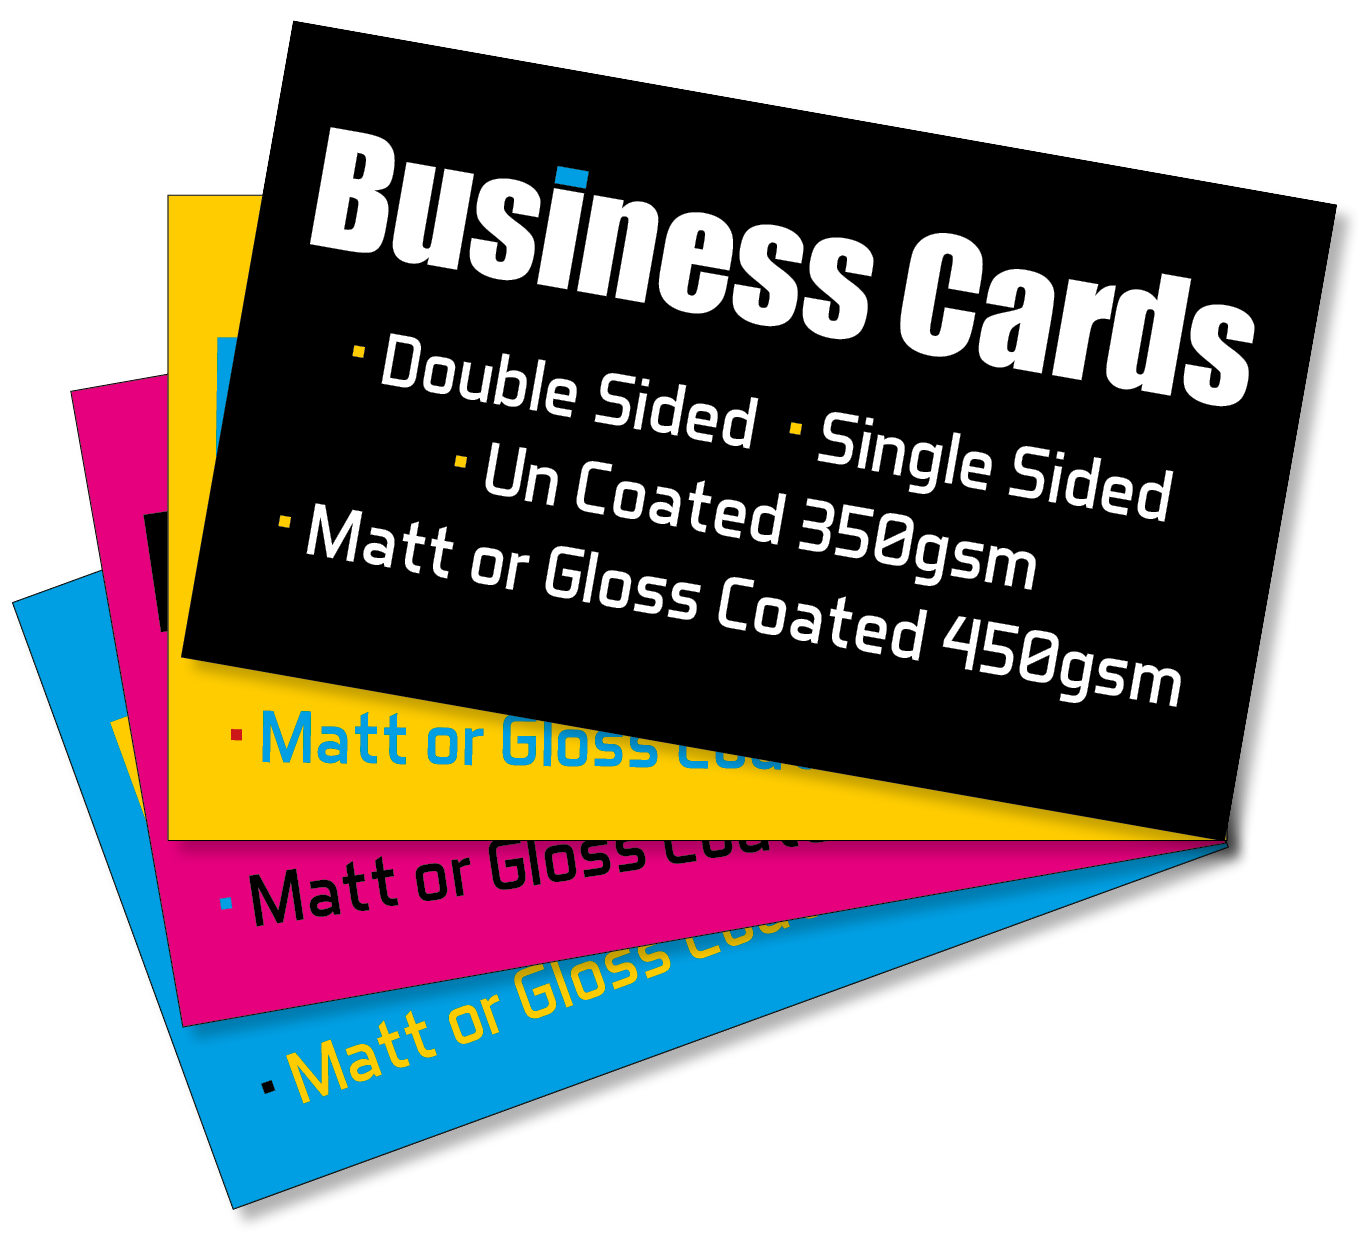 Business Cards Png (106+ images in Collection) Page 2.